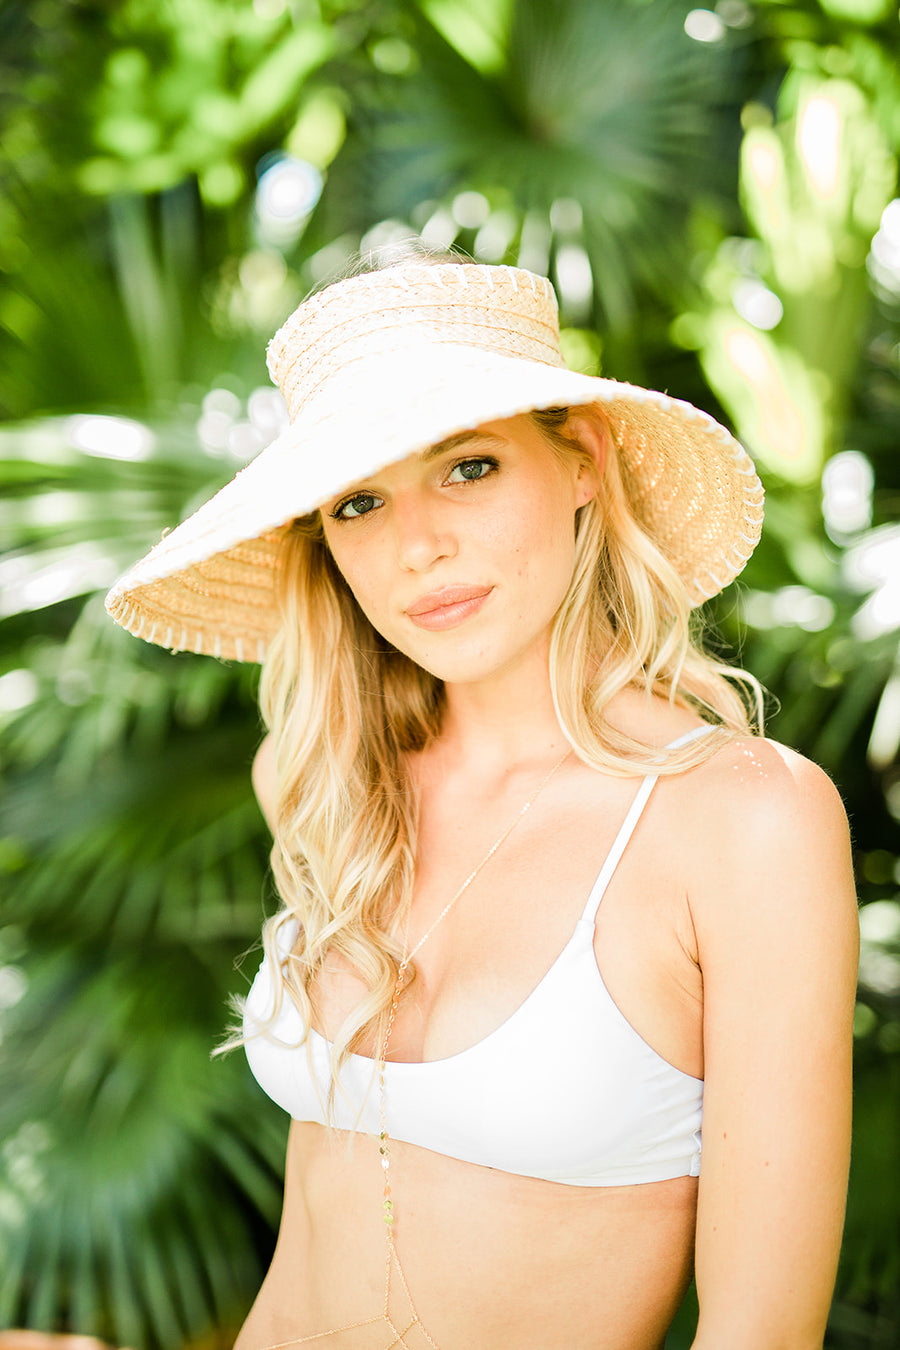 Roll Up Travel Visor - The Beach Bride by Chic Parisien, a destination for beach weddings, bachelorettes and honeymoons